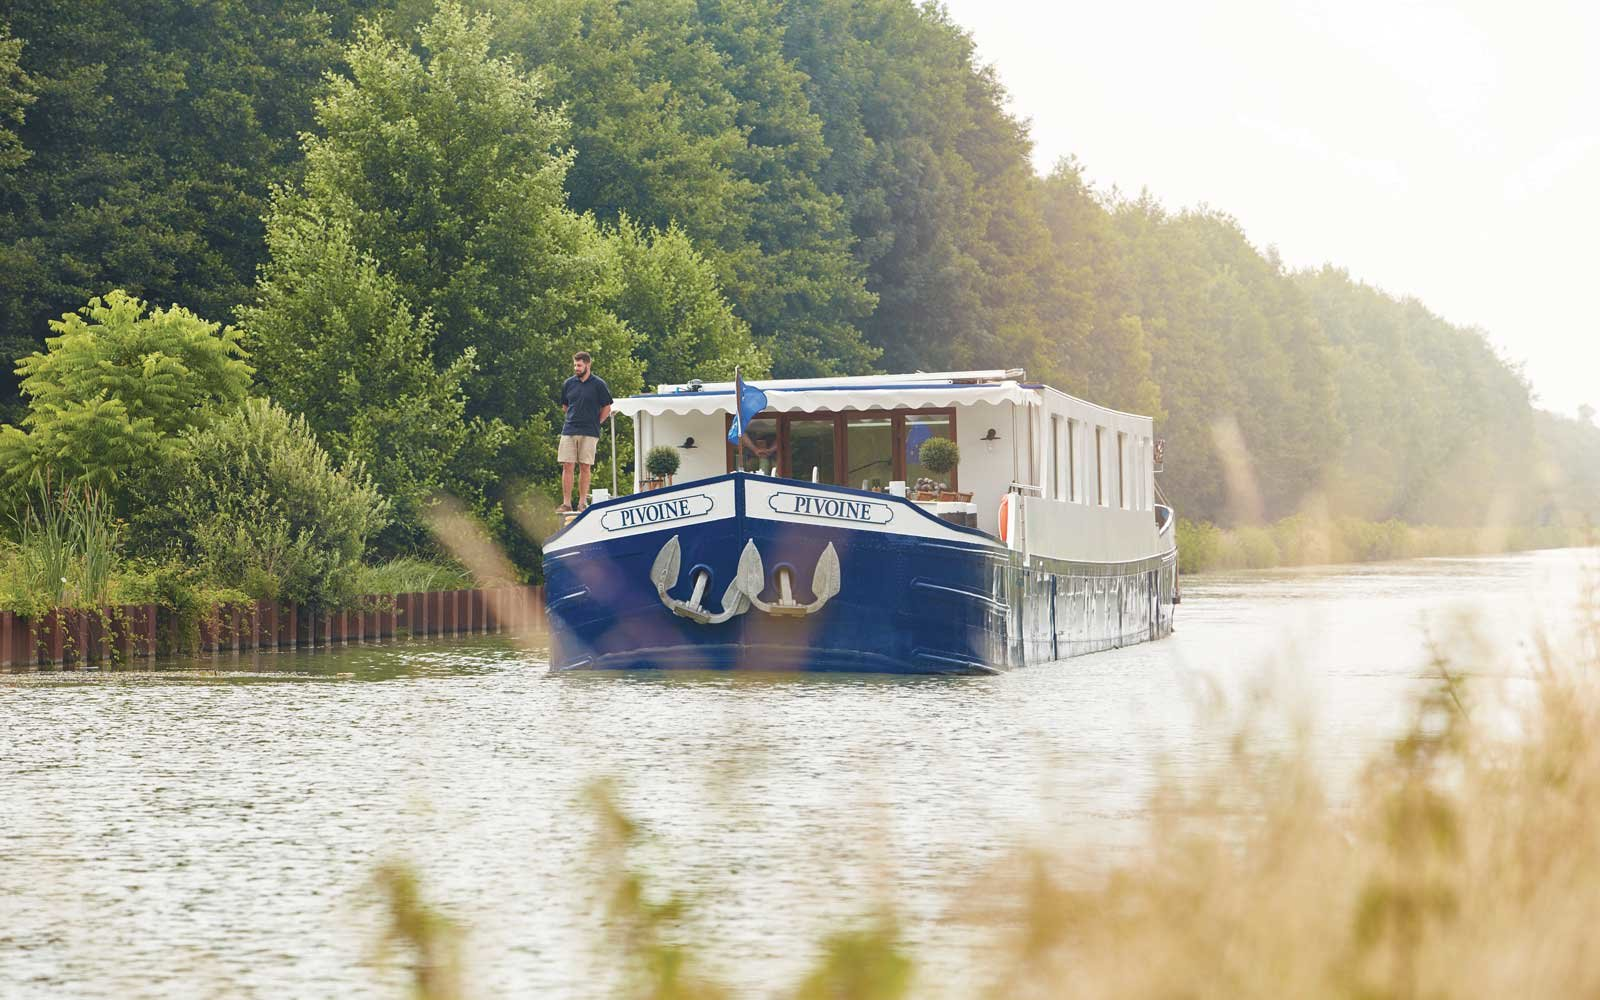 The Best Way to See France Is Floating Down Rural Rivers and Hidden Canals on a Luxury Barge